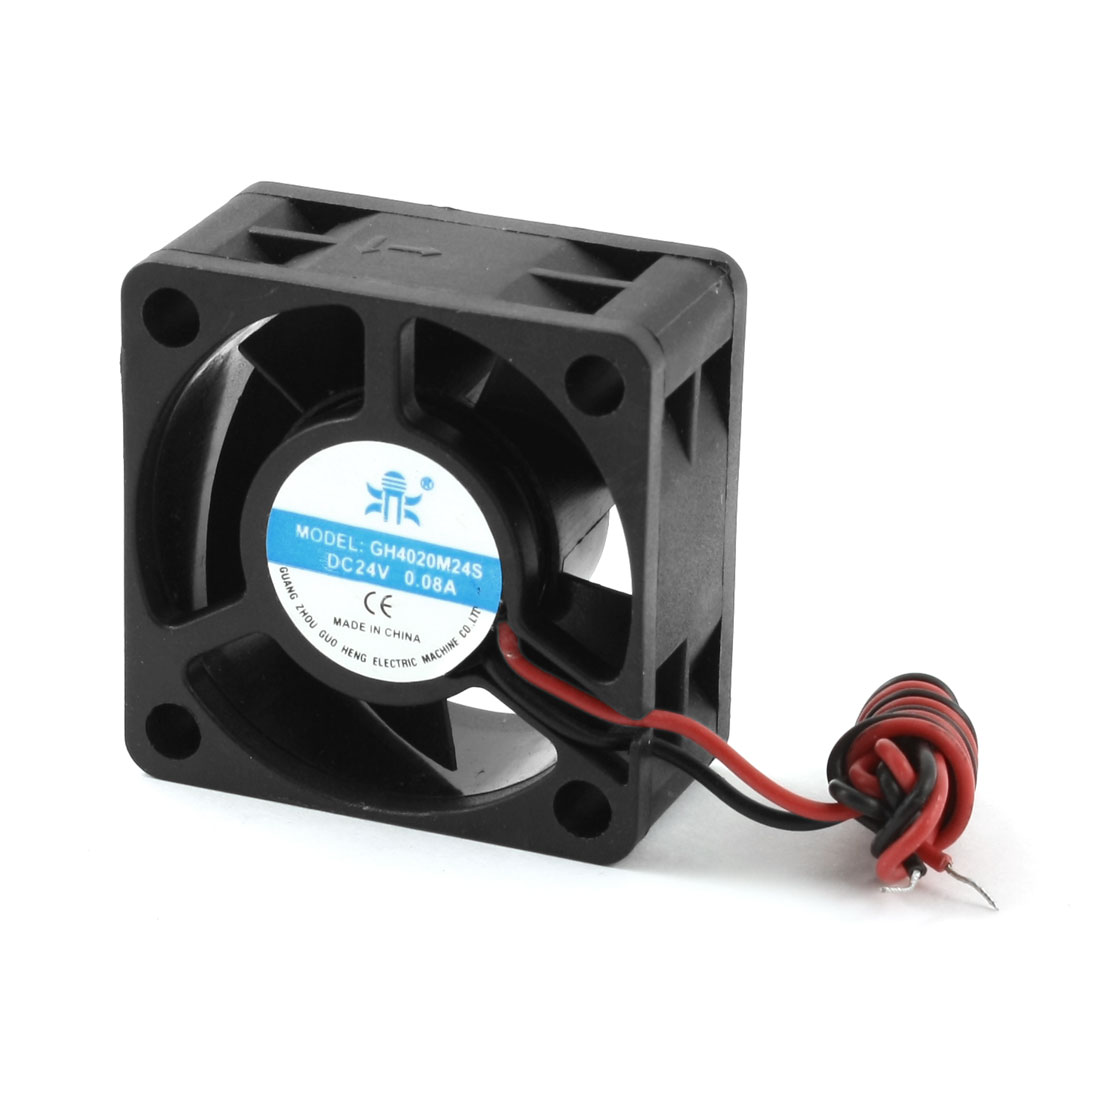 DC 24V 0.08A 2-Wired Square Black Plastic Frame 5 Fans Axial Cooling Fan Cooler 92mm x 92mm x 25mm